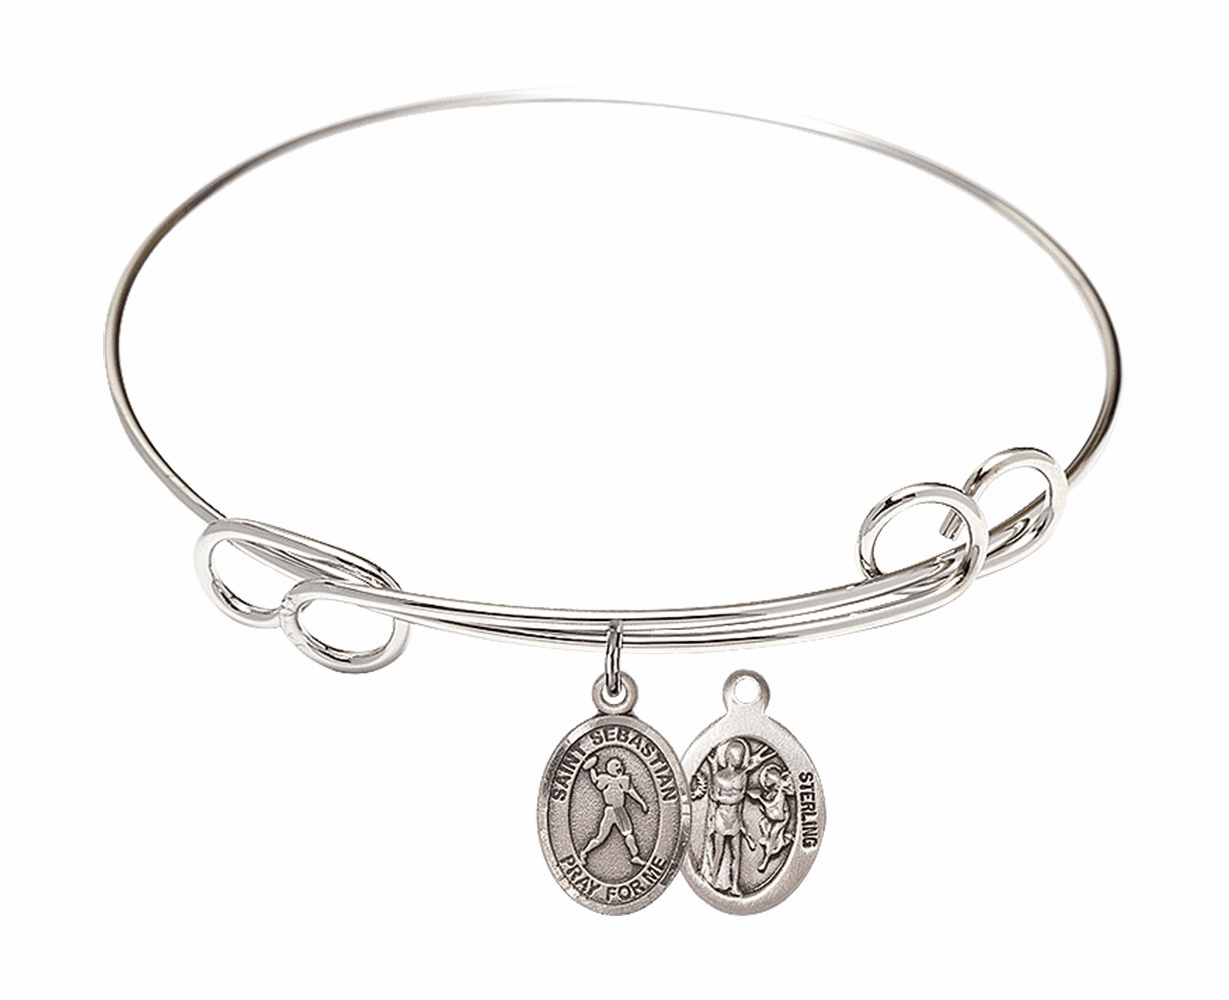 Round Loop St Sebastian Football Bangle Charm Bracelet by Bliss